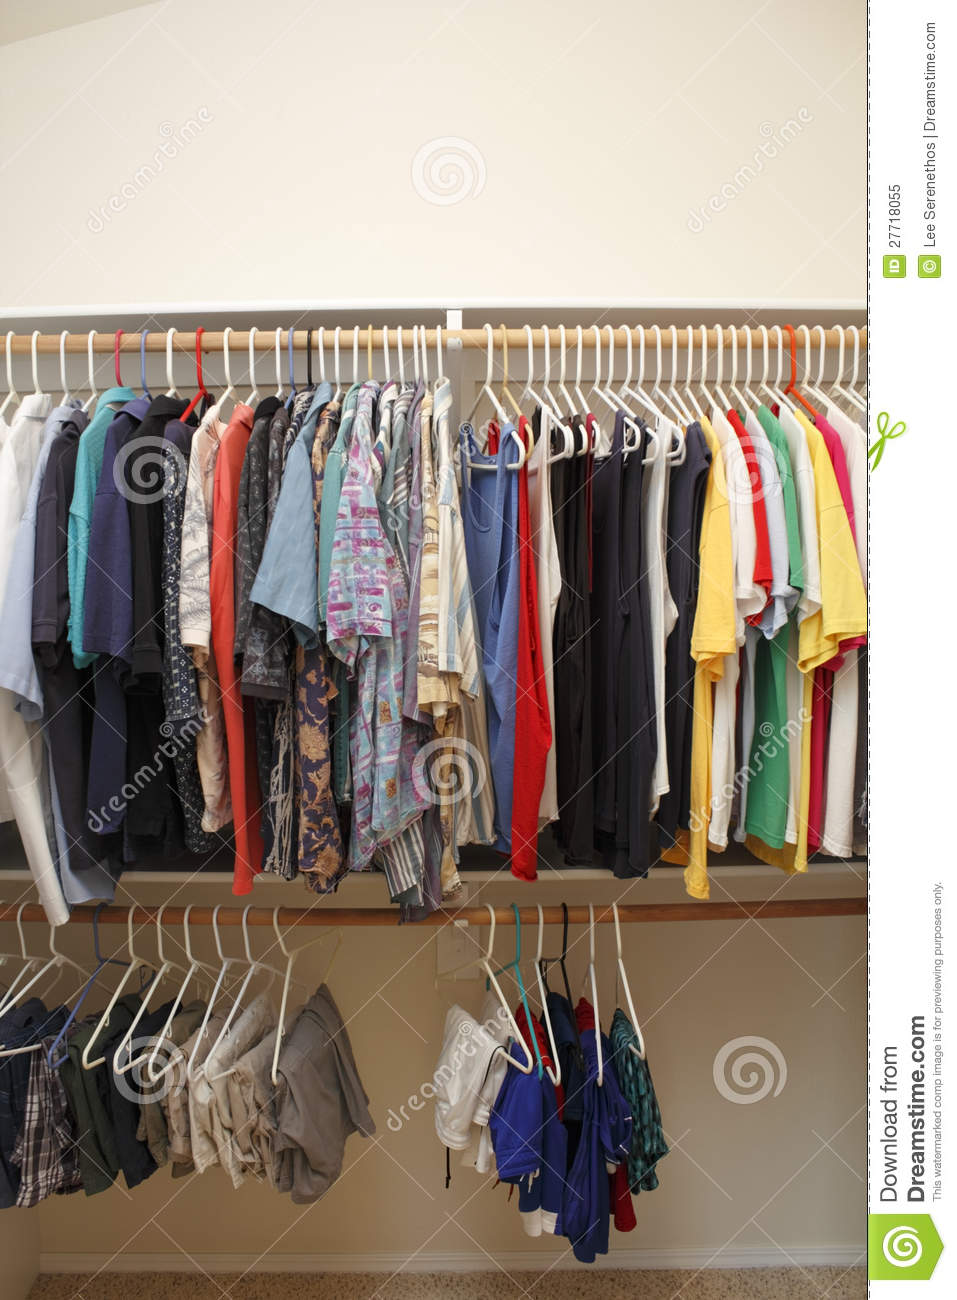 clothes storage blog no b innovative have closet you ideas when clothing organization